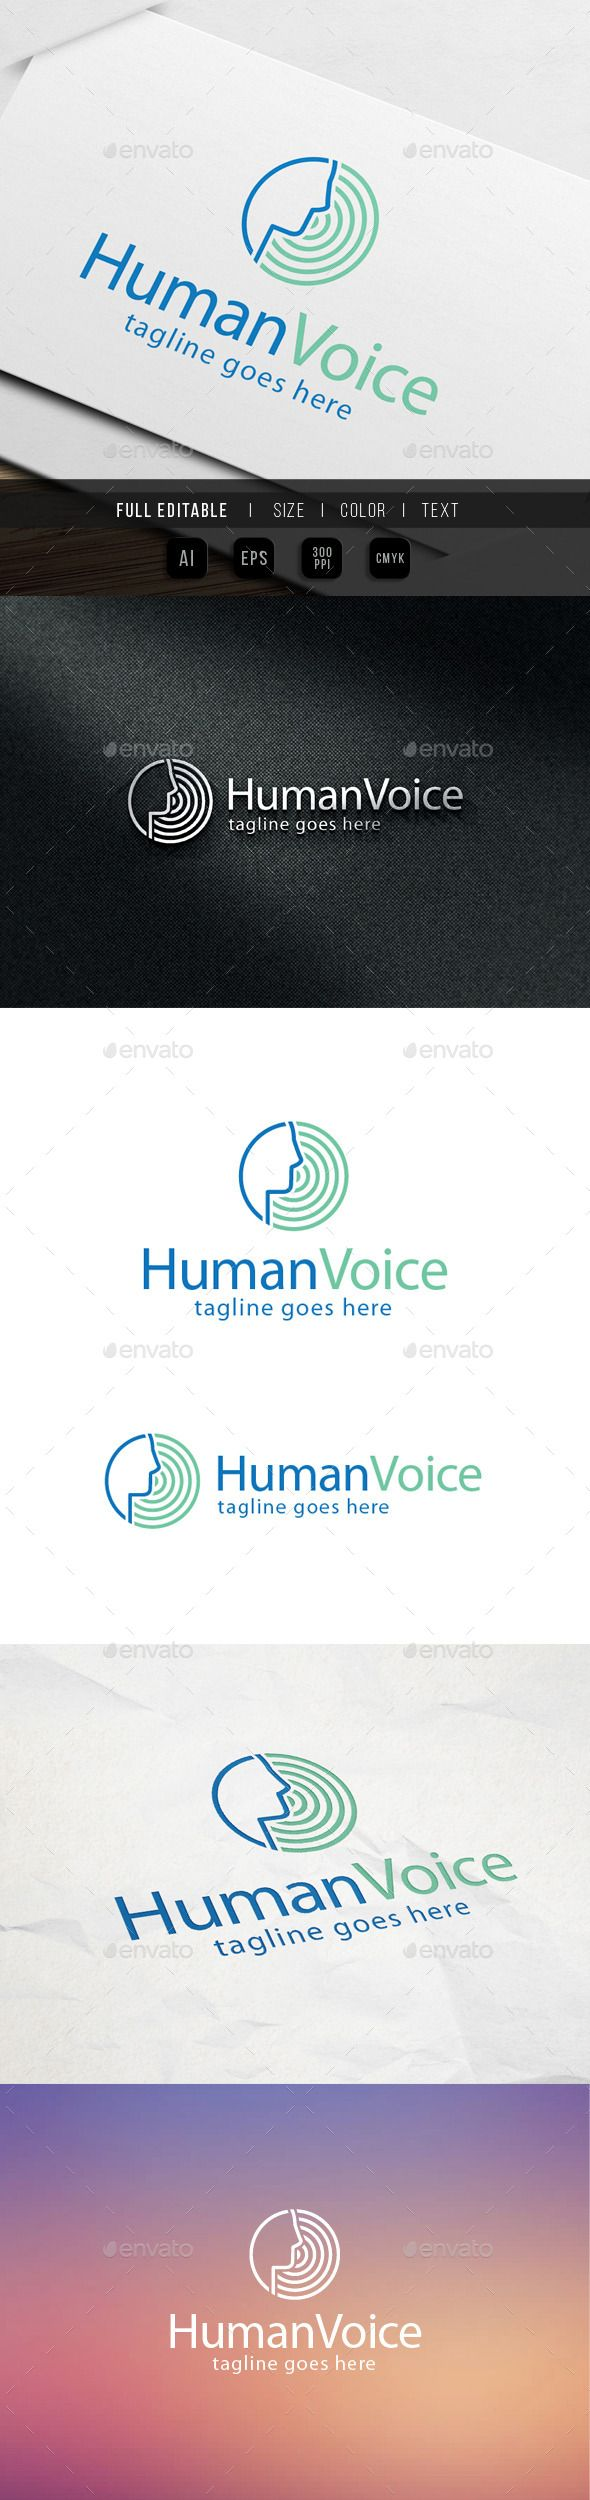 Human Voice Logo — Vector EPS #write #sing • Available here → https://graphicriver.net/item/human-voice-logo/9870097?ref=pxcr